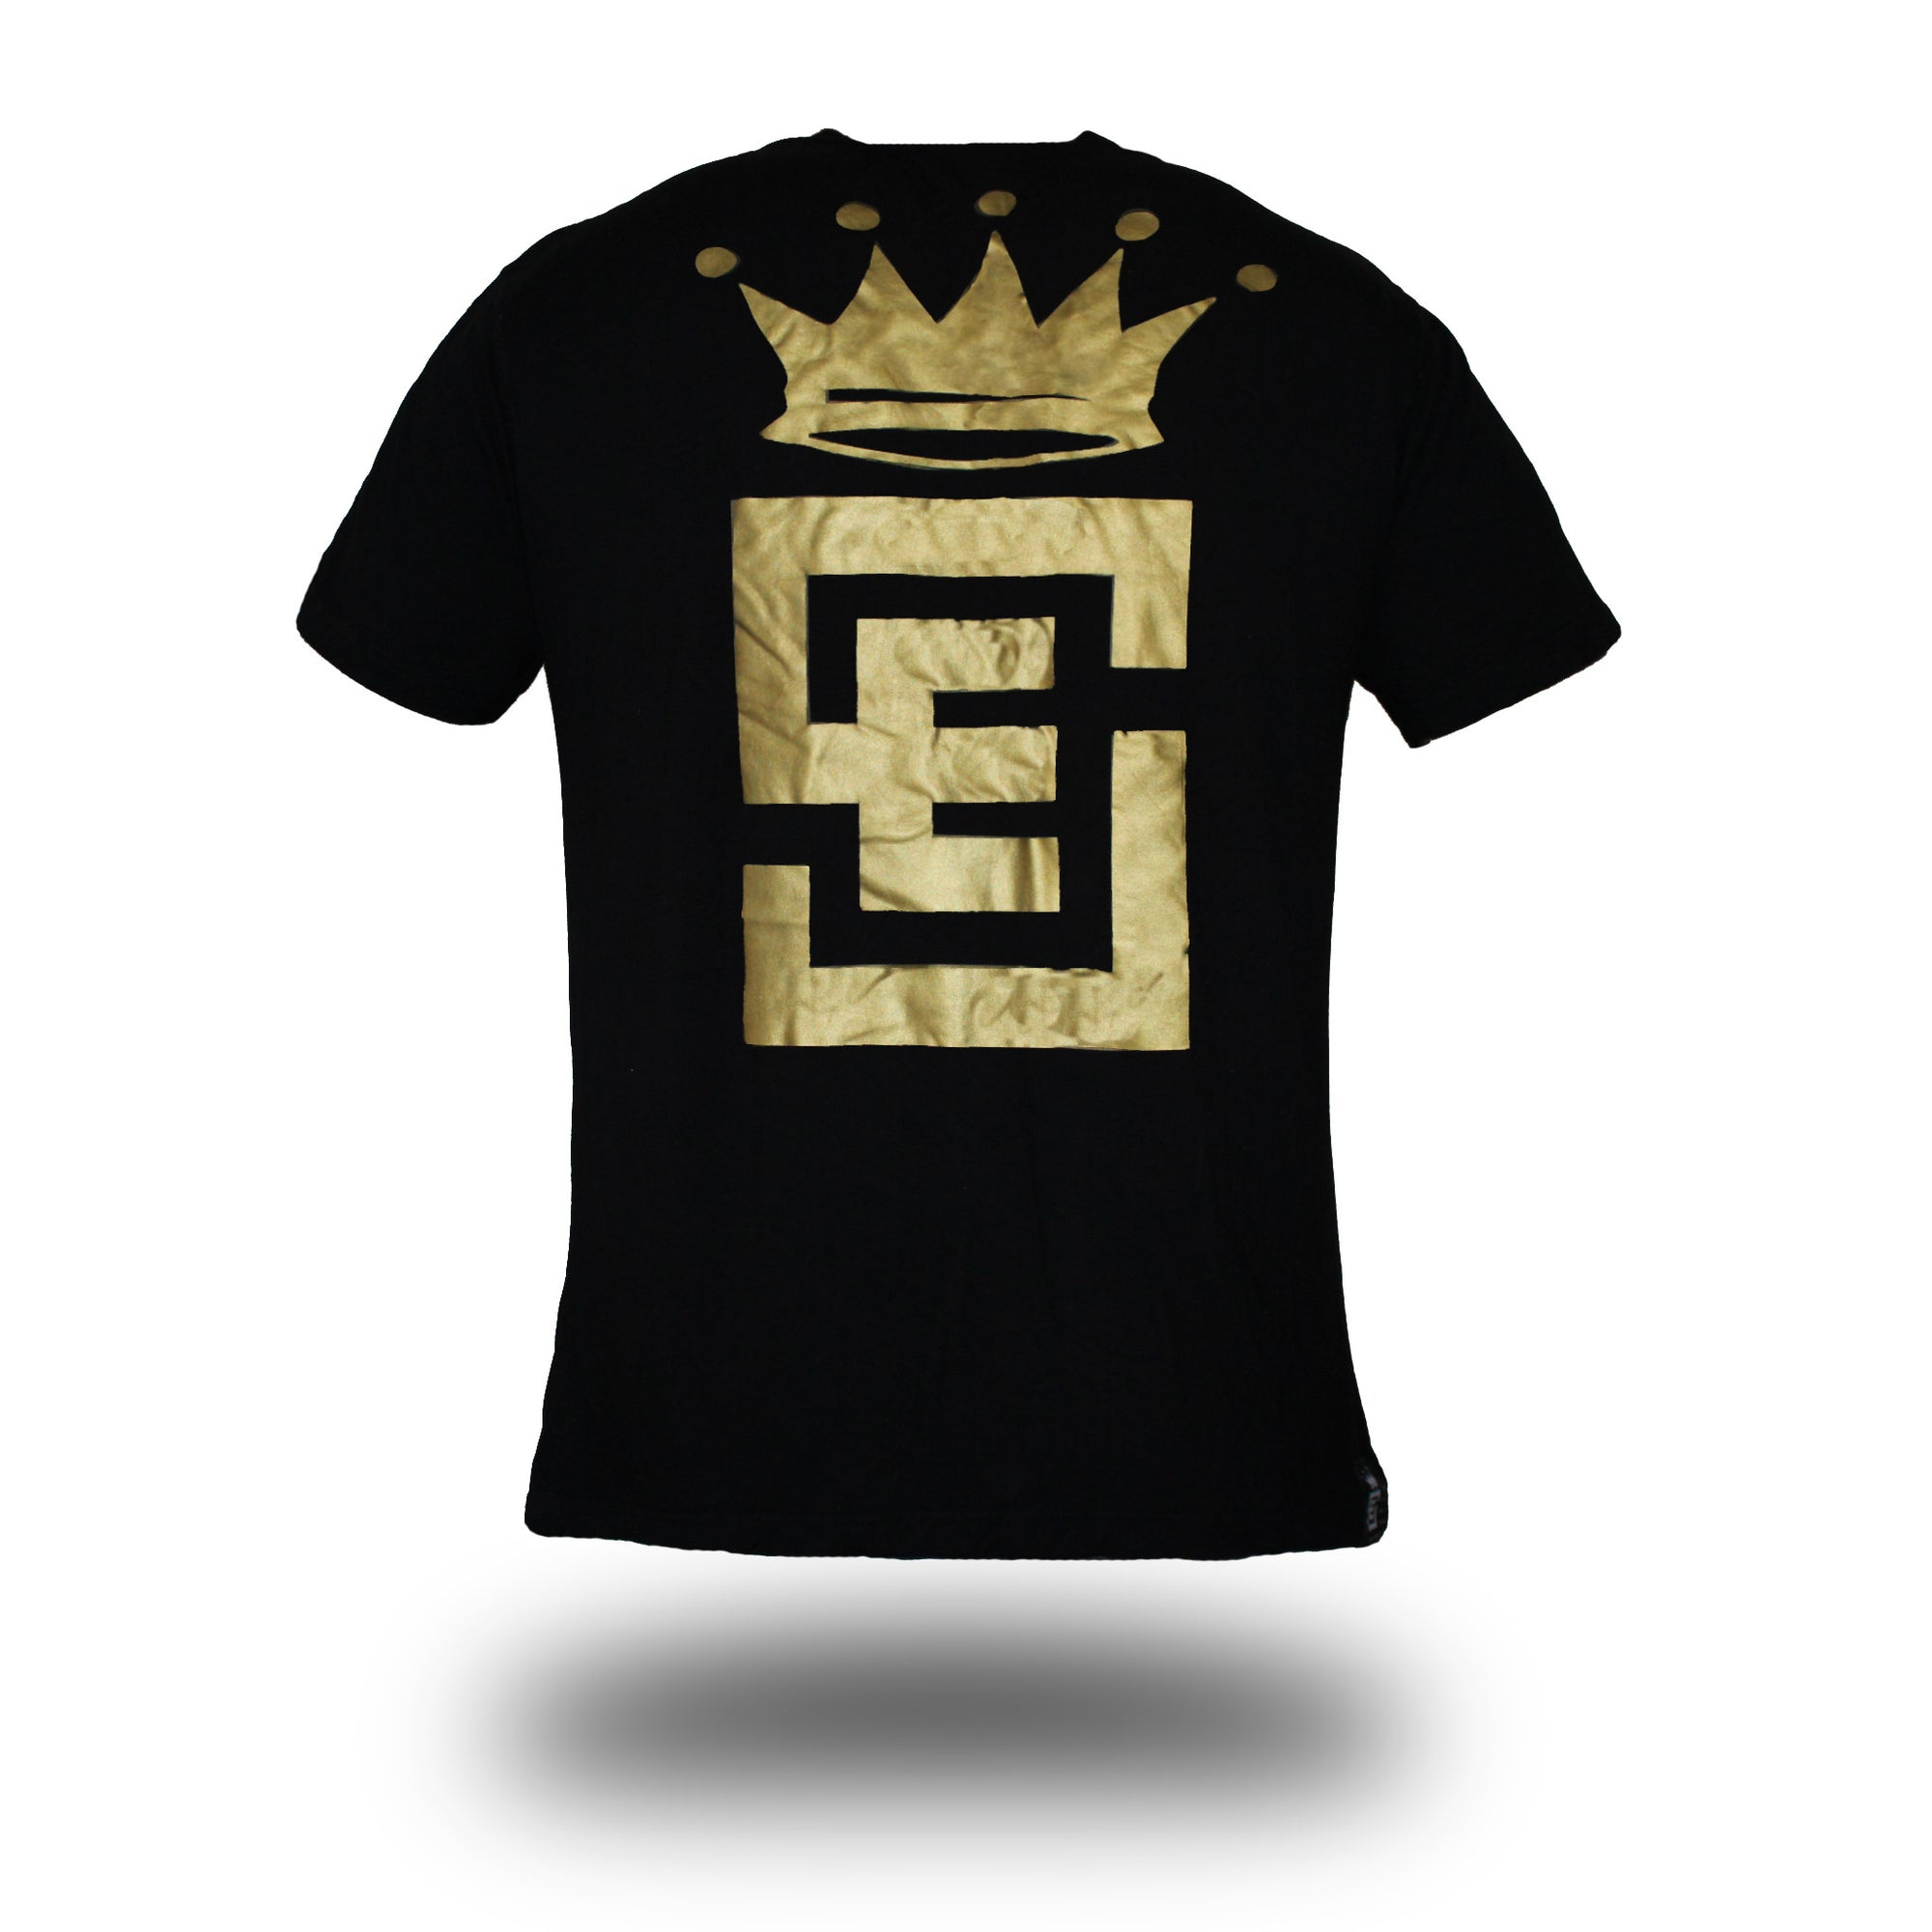 Mens limited edition tee black with gold print front